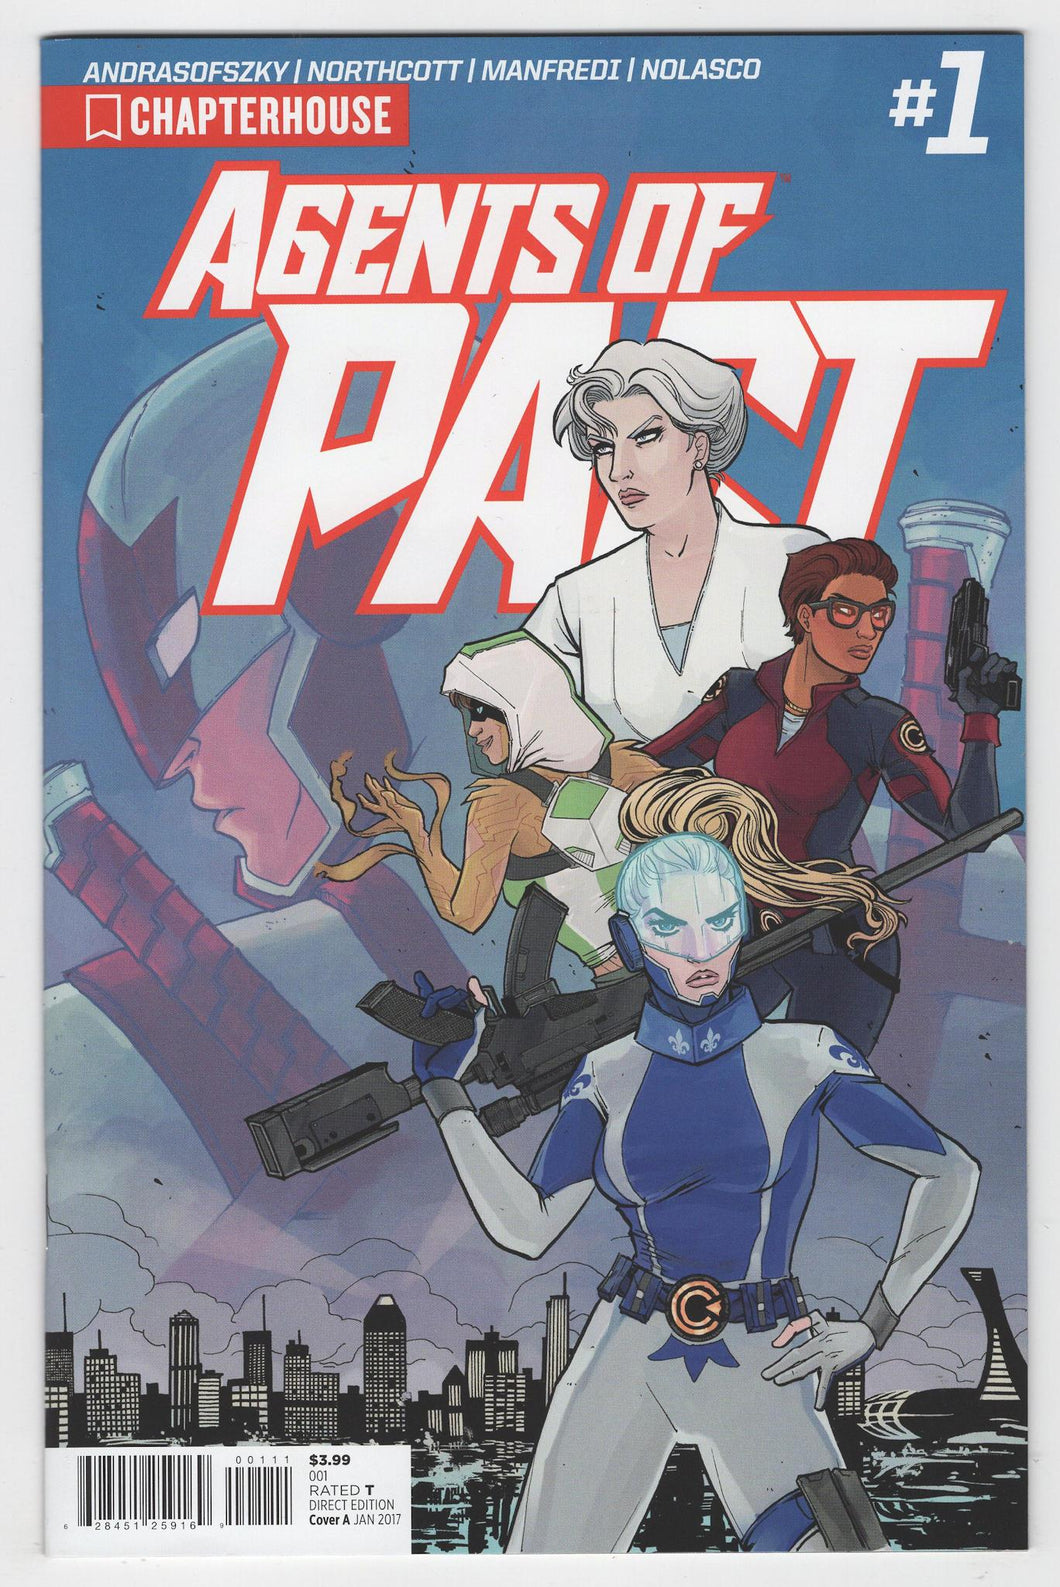 Agents of PACT #1 Cover Front